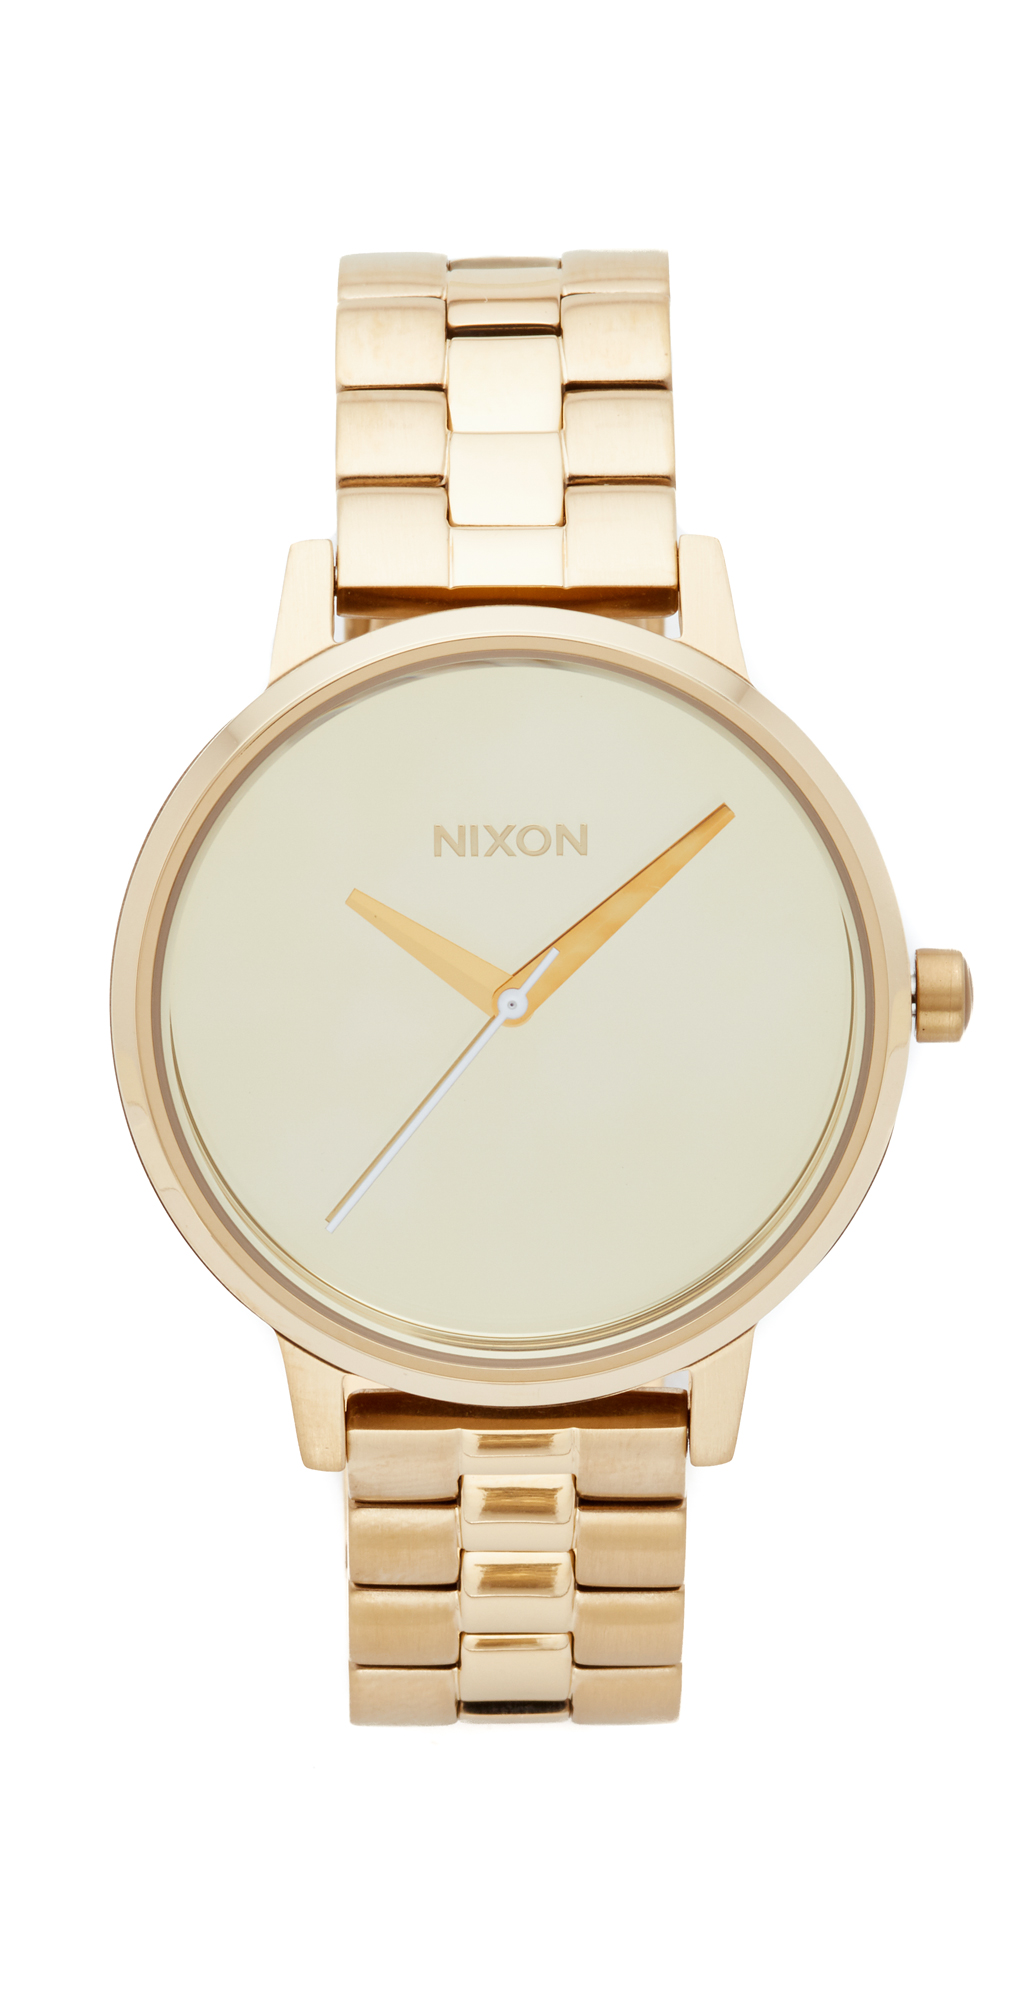 The Kensington Watch Nixon